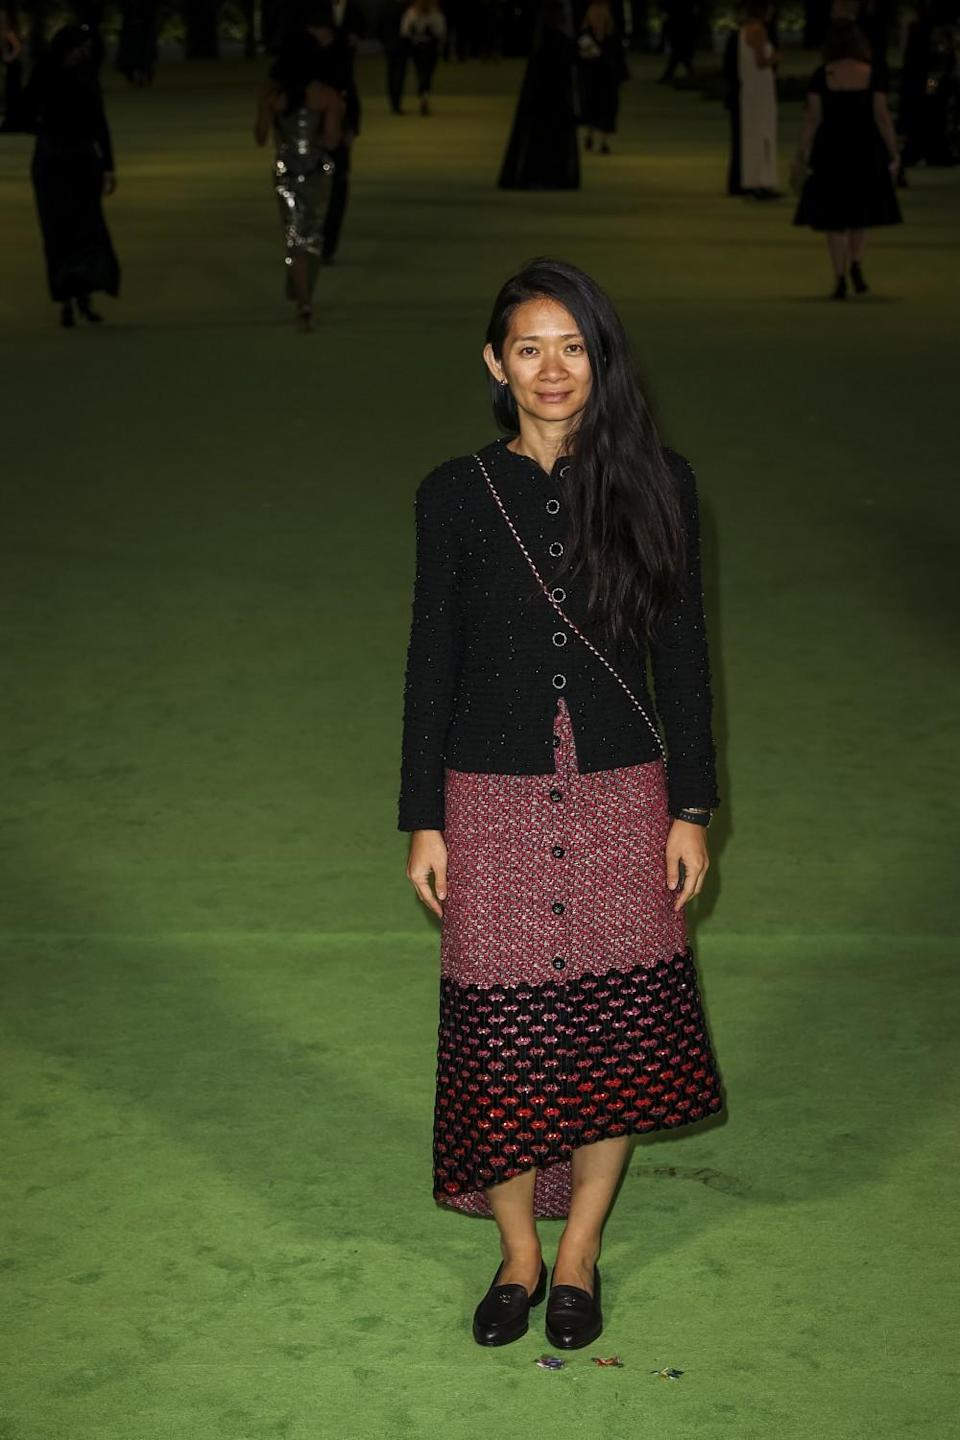 A woman in a black, button-down shirt and pink skirt posing on a green carpet